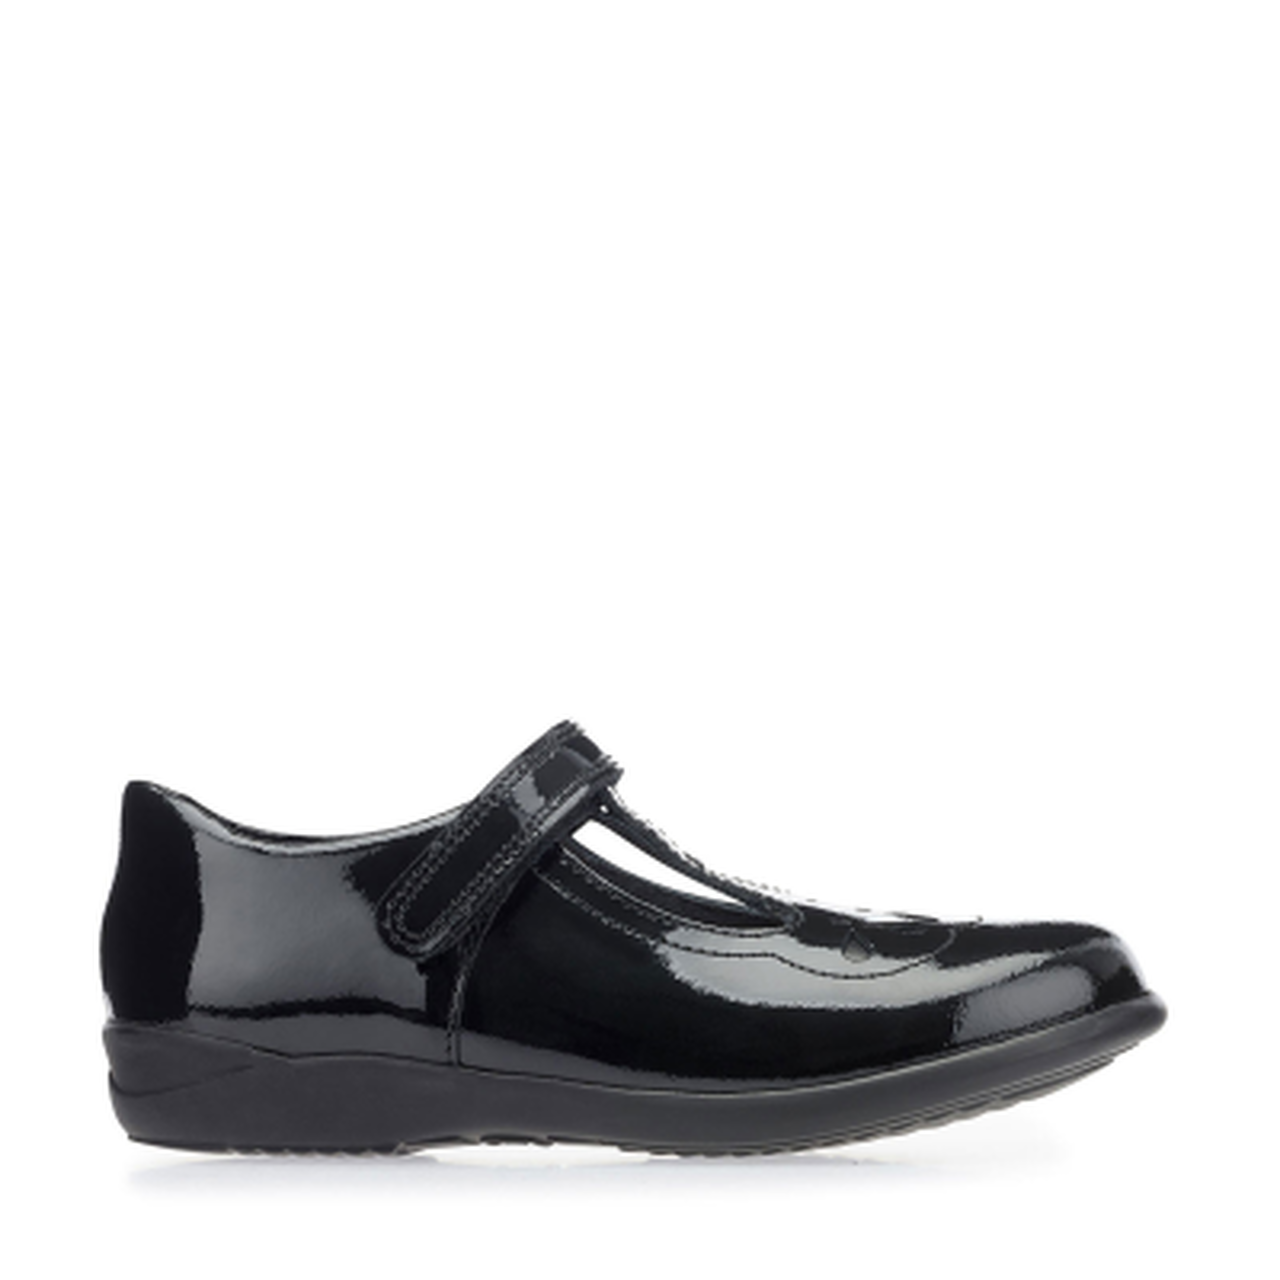 Start-rite Poppy Girls Black Patent Shoe